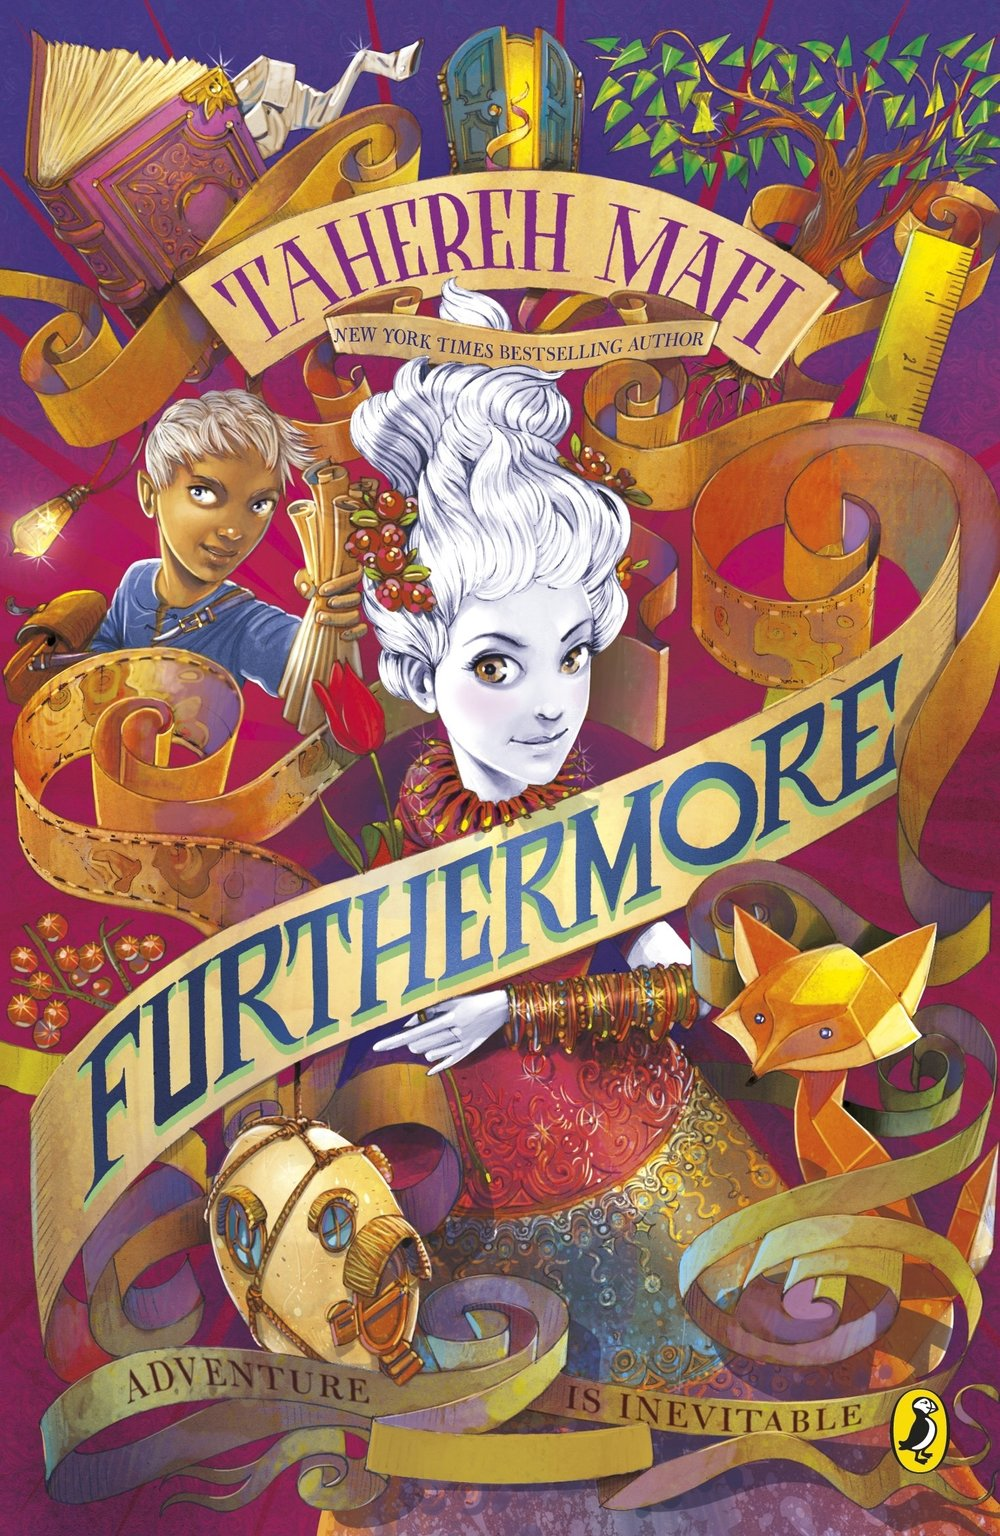 furthermore - by Tahereh Mafi